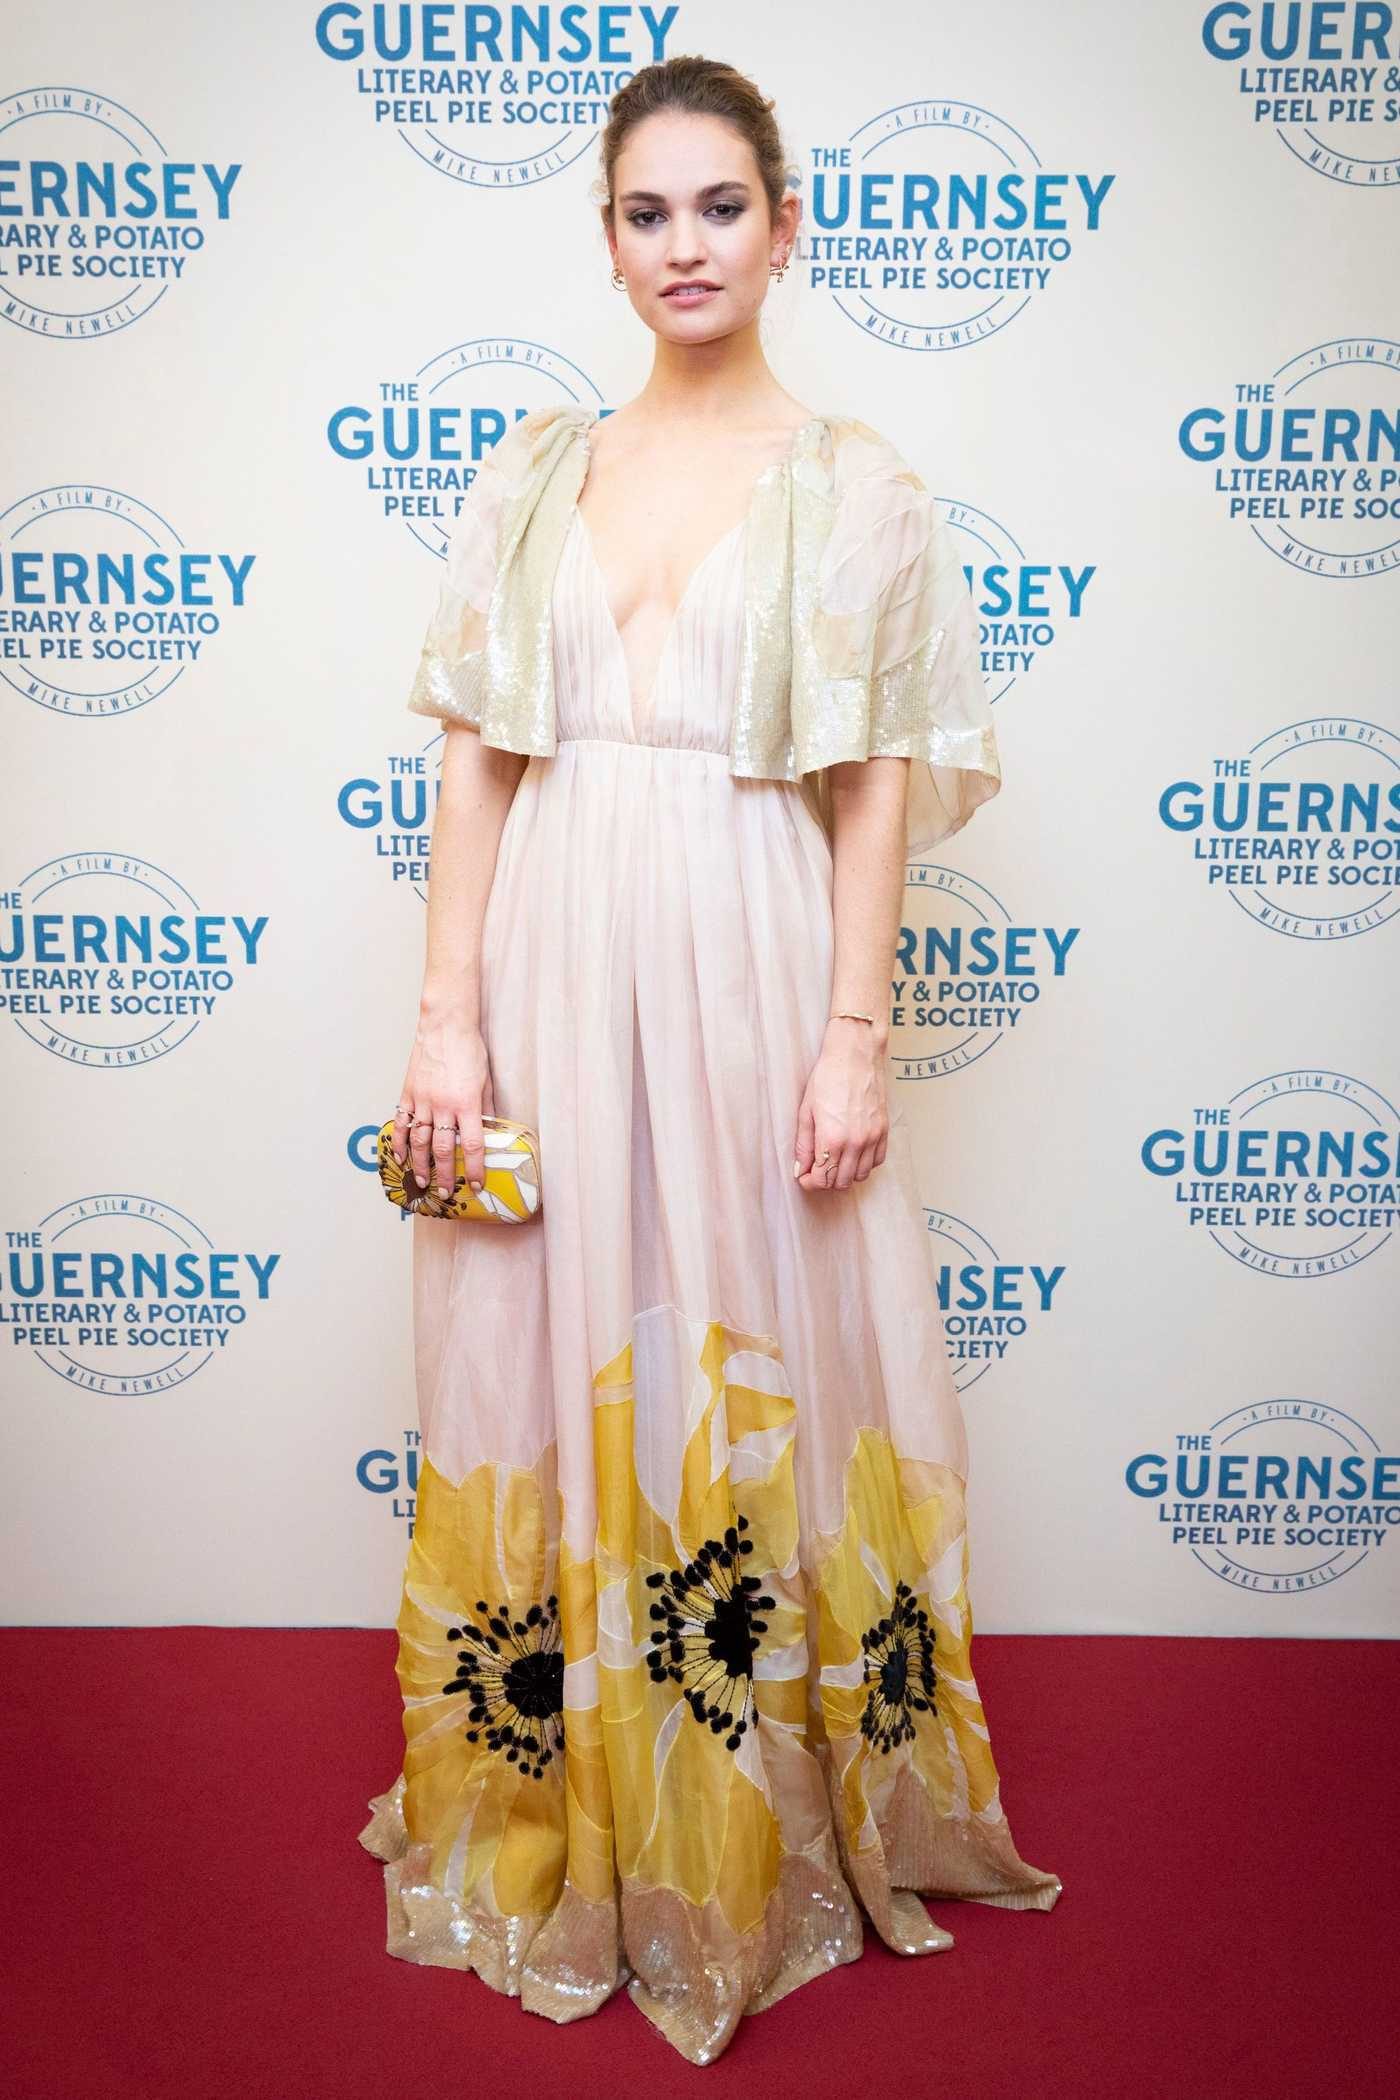 Lily James at The Guernsey Literary and Potato Peel Pie Society Premiere in Guernsey 04/12/2018